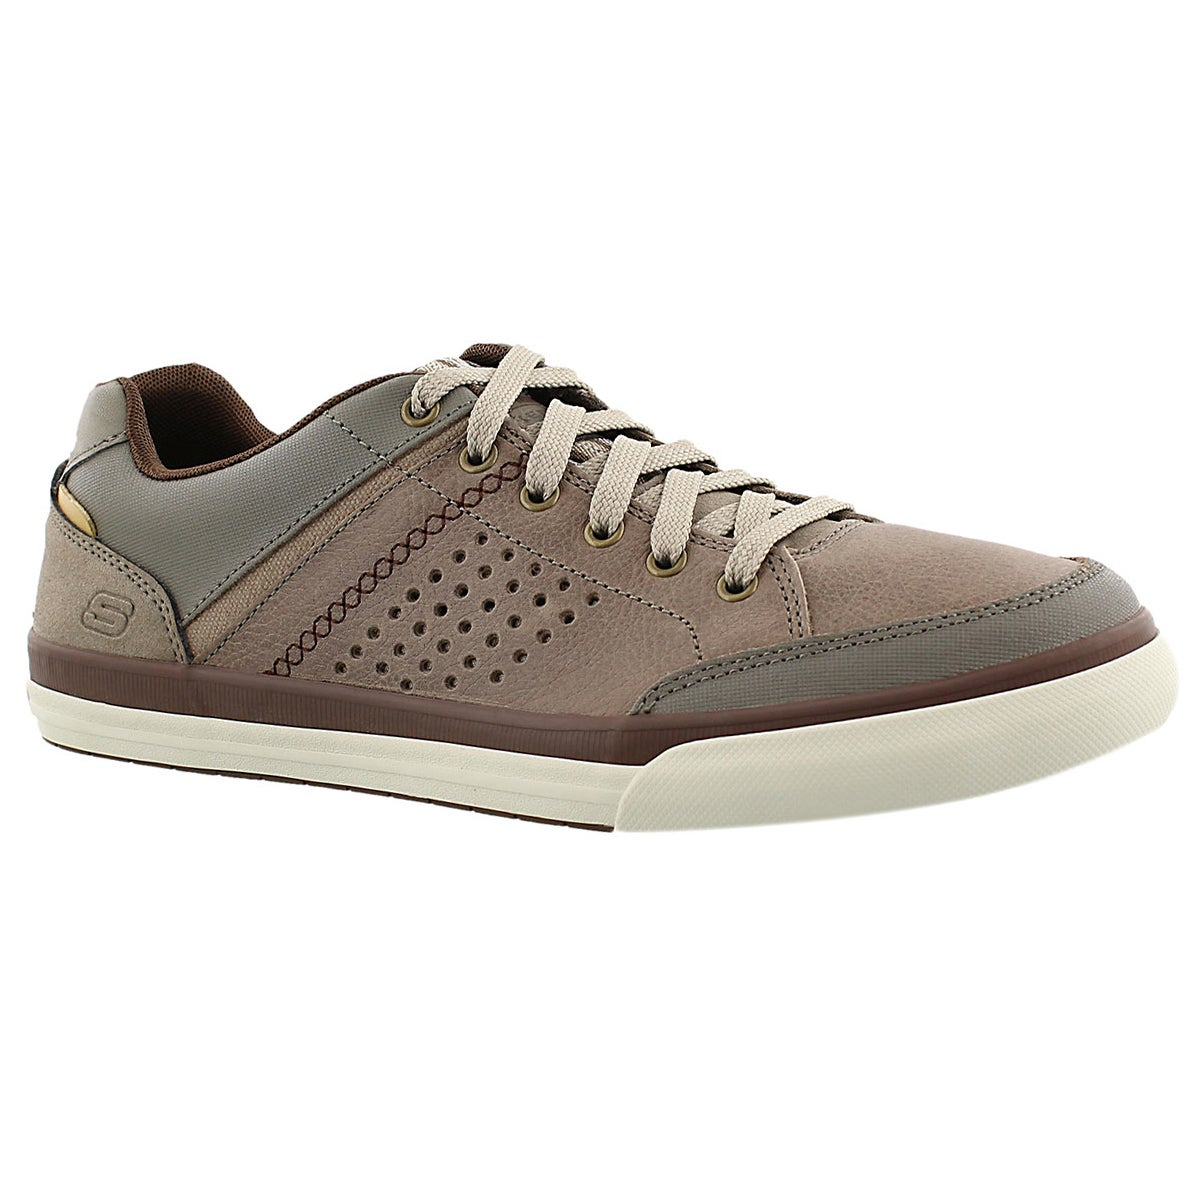 Men's DIAMONDBACK RENDOL taupe lace up sneakers